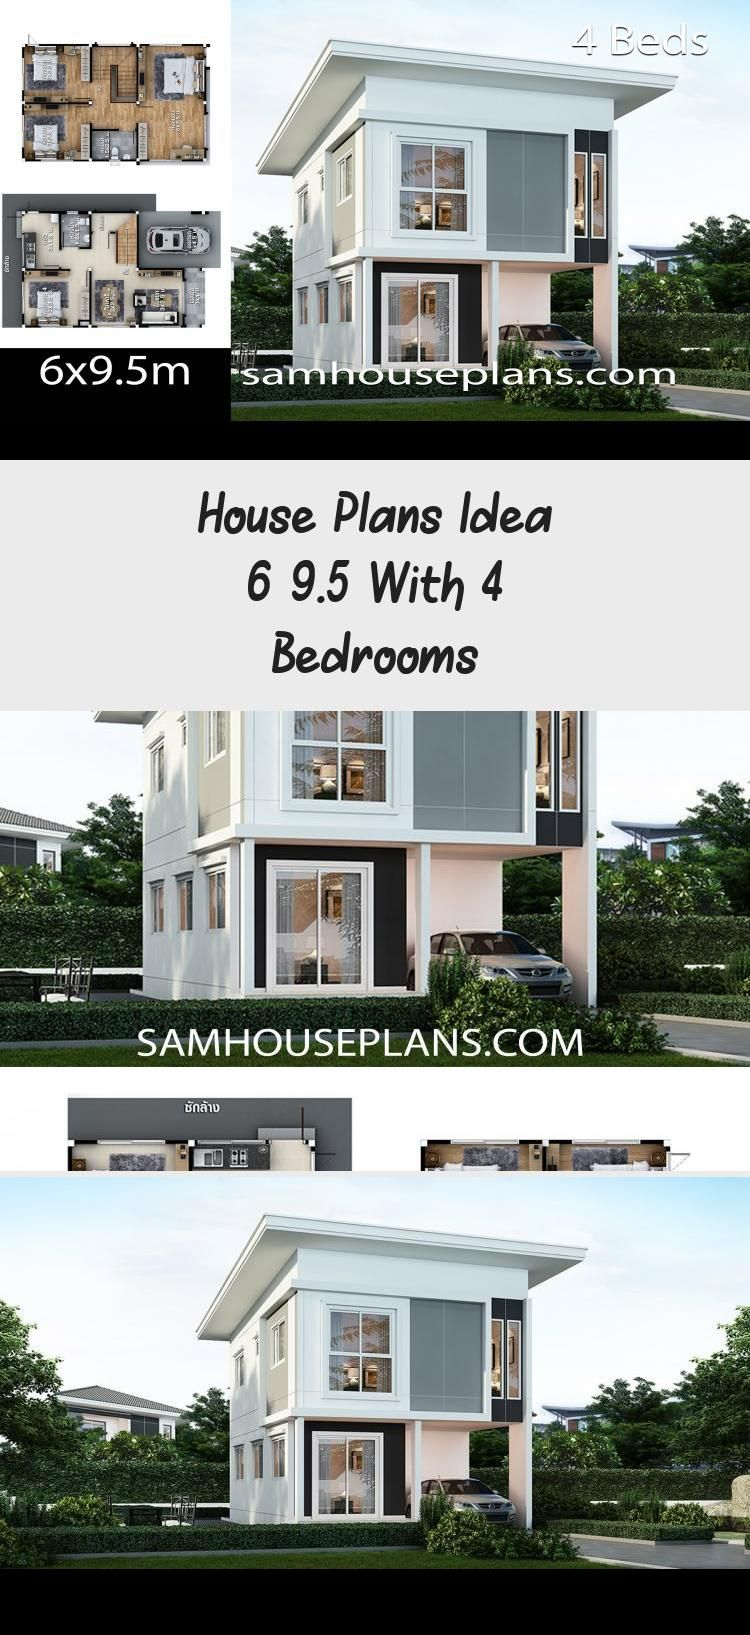 House Plans Idea 6x9 5 With 4 Bedrooms Sam House Plans Narrowhouseplans Tinyhouseplans Houseplansonestor In 2020 Unique House Plans House Plans Narrow House Plans